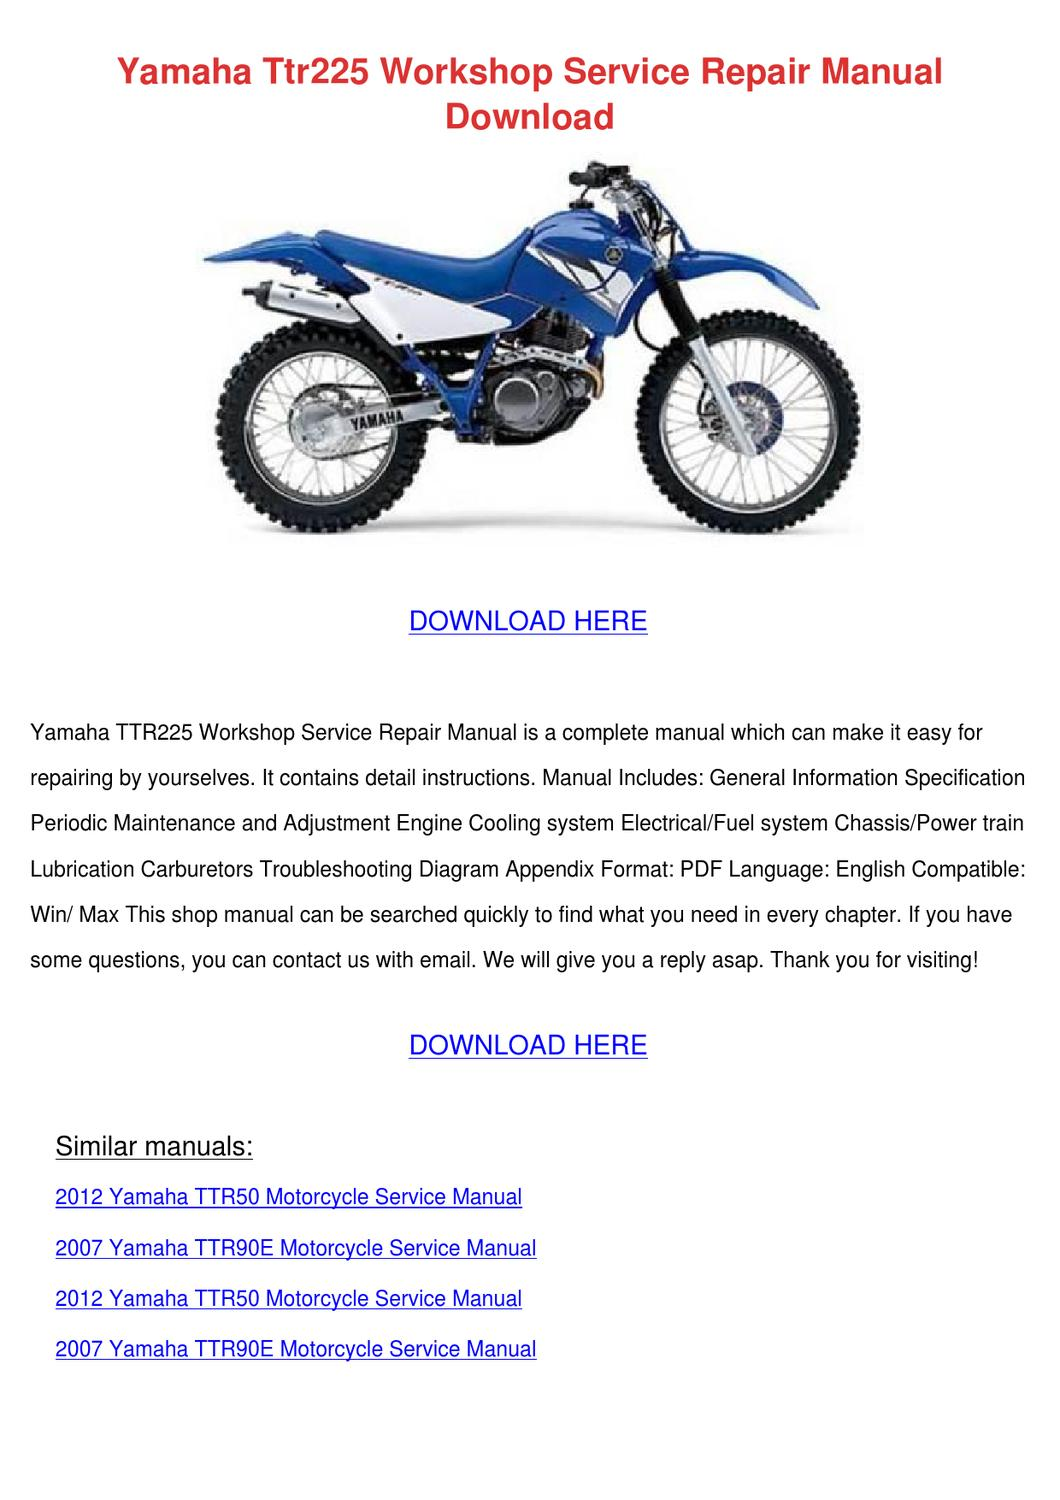 yamaha ttr225 workshop service repair manualavaamaral - issuu